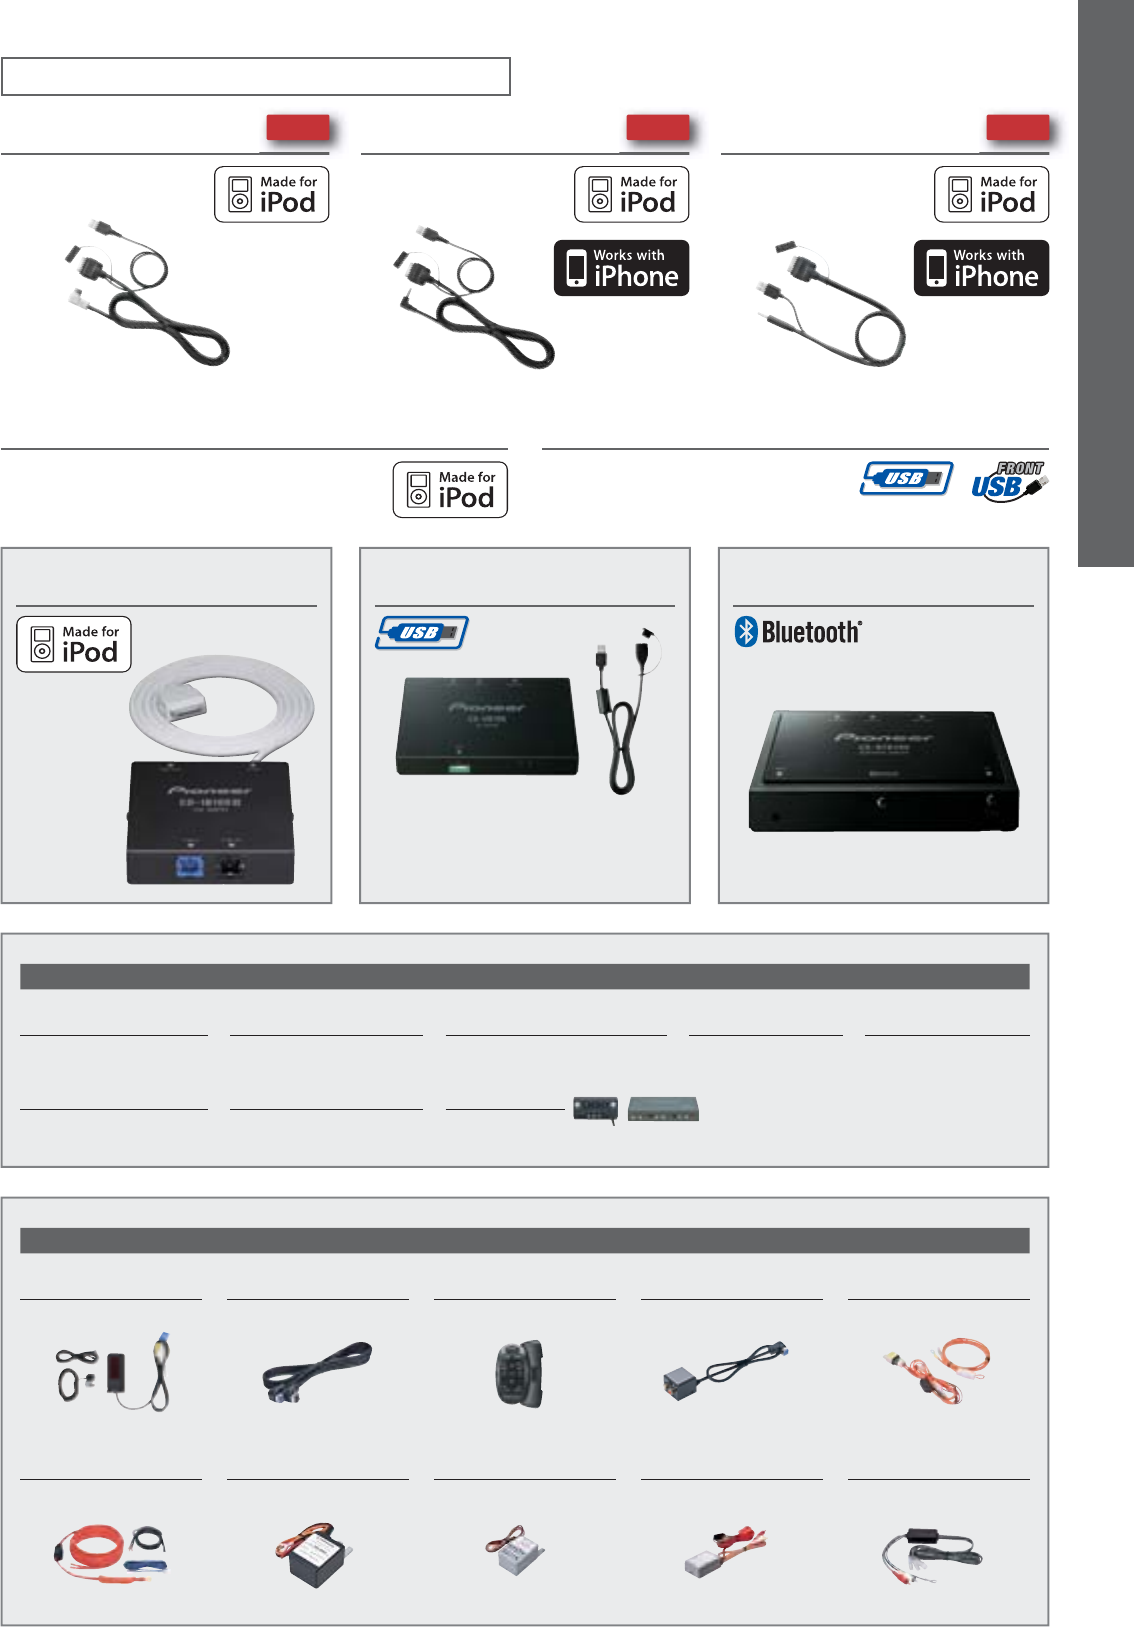 b8d4d374 db37 4aeb a5fb 4491b6f8c412 bg1f page 31 of pioneer car video system avh p5150dvd user guide pioneer avh p3100dvd wiring diagram at couponss.co